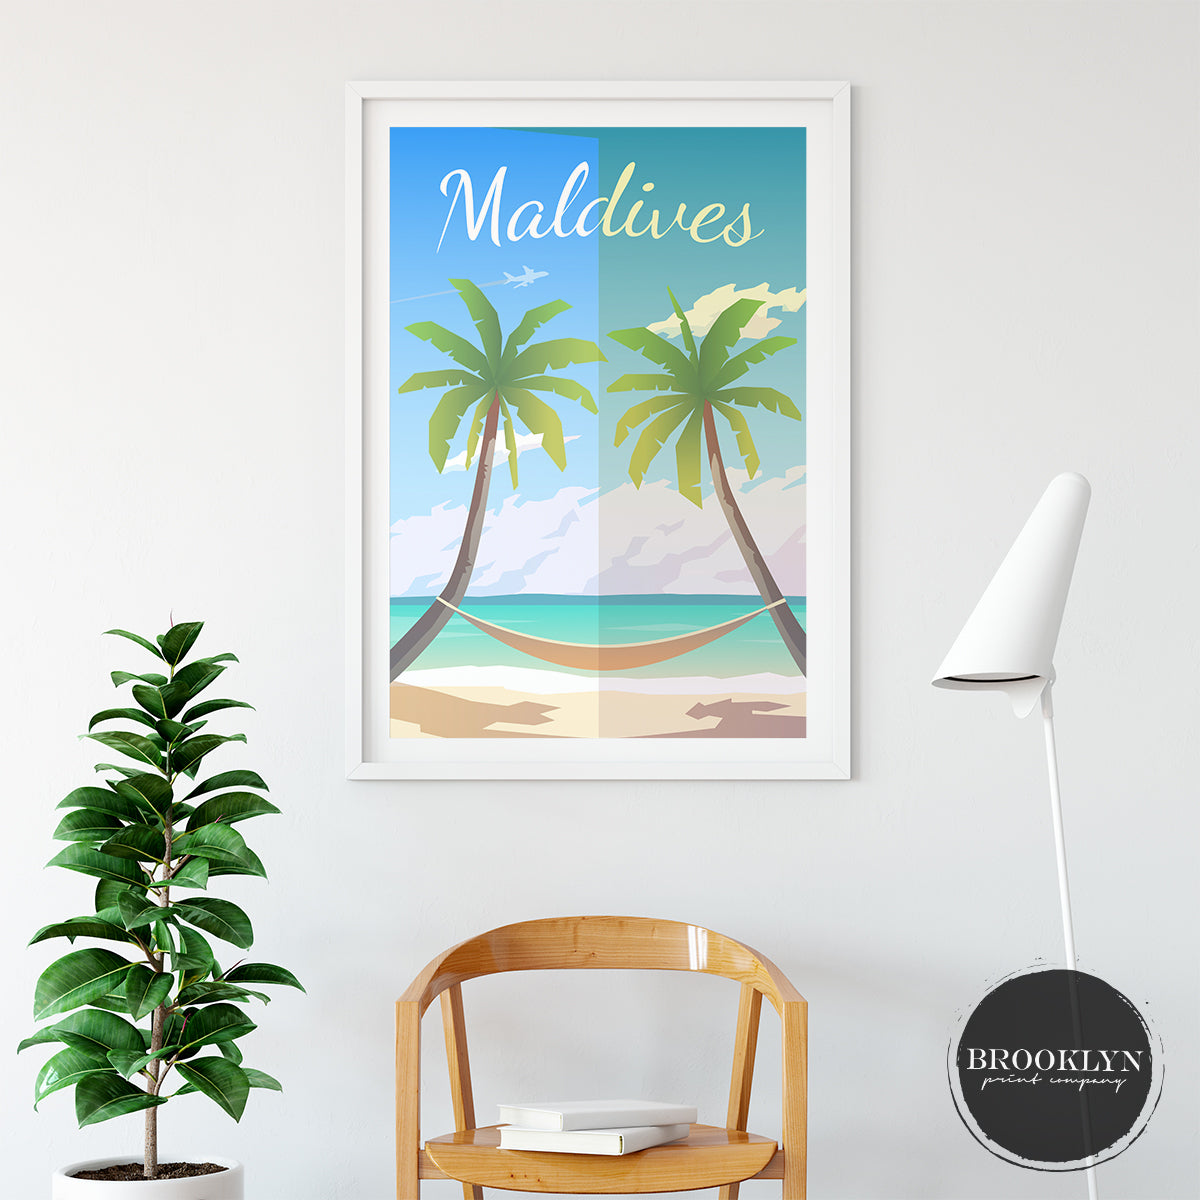 Maldives Landscape City Art Travel Poster Art Print - VIVIDEDITIONS